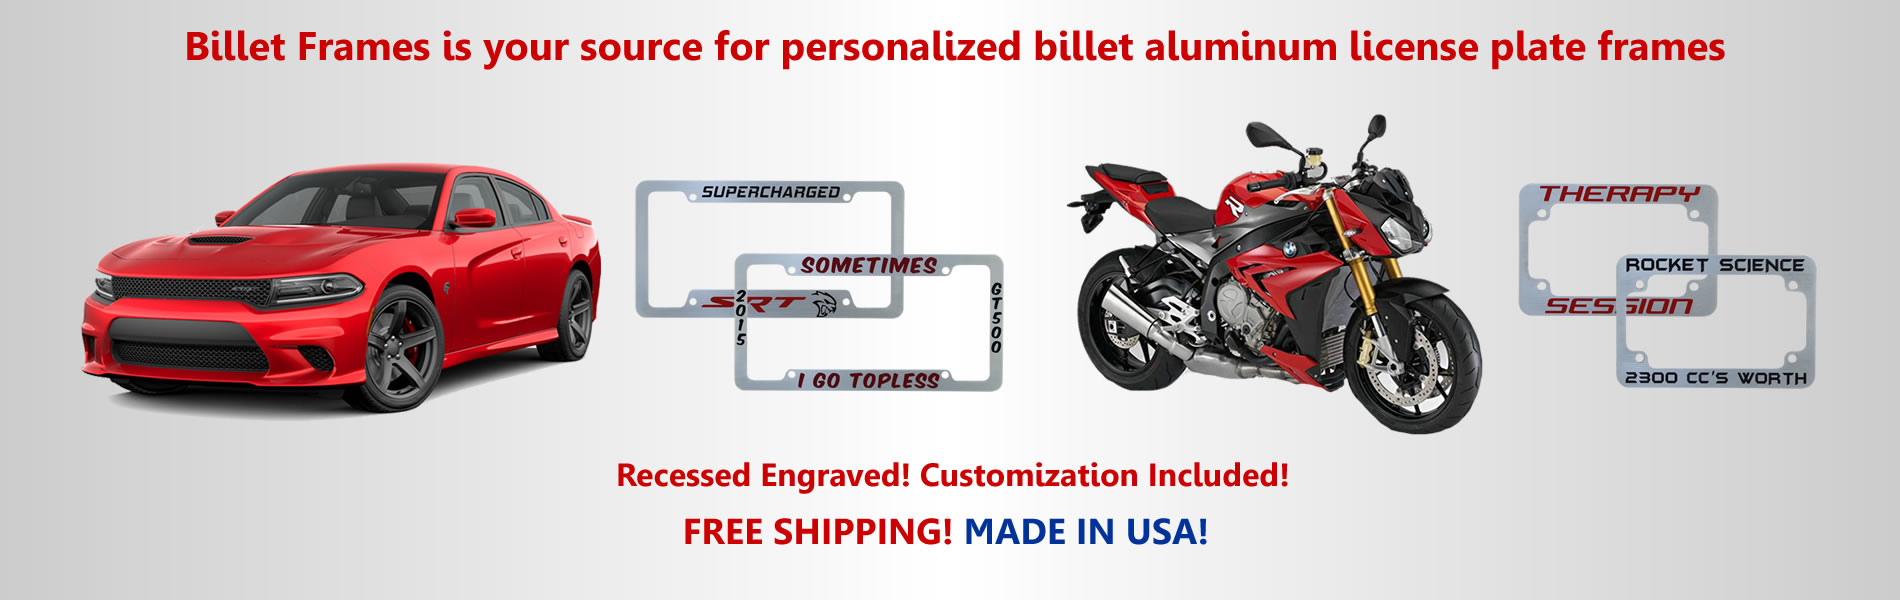 Custom Engraved Billet Auto & Motorcycle License Plate Frames